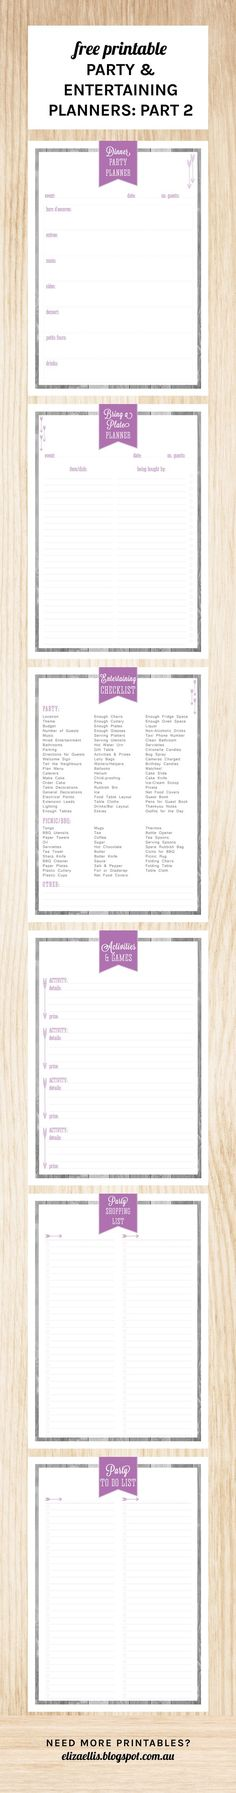 party planning checklist   www.therefurbishedlife.com   Complete ...